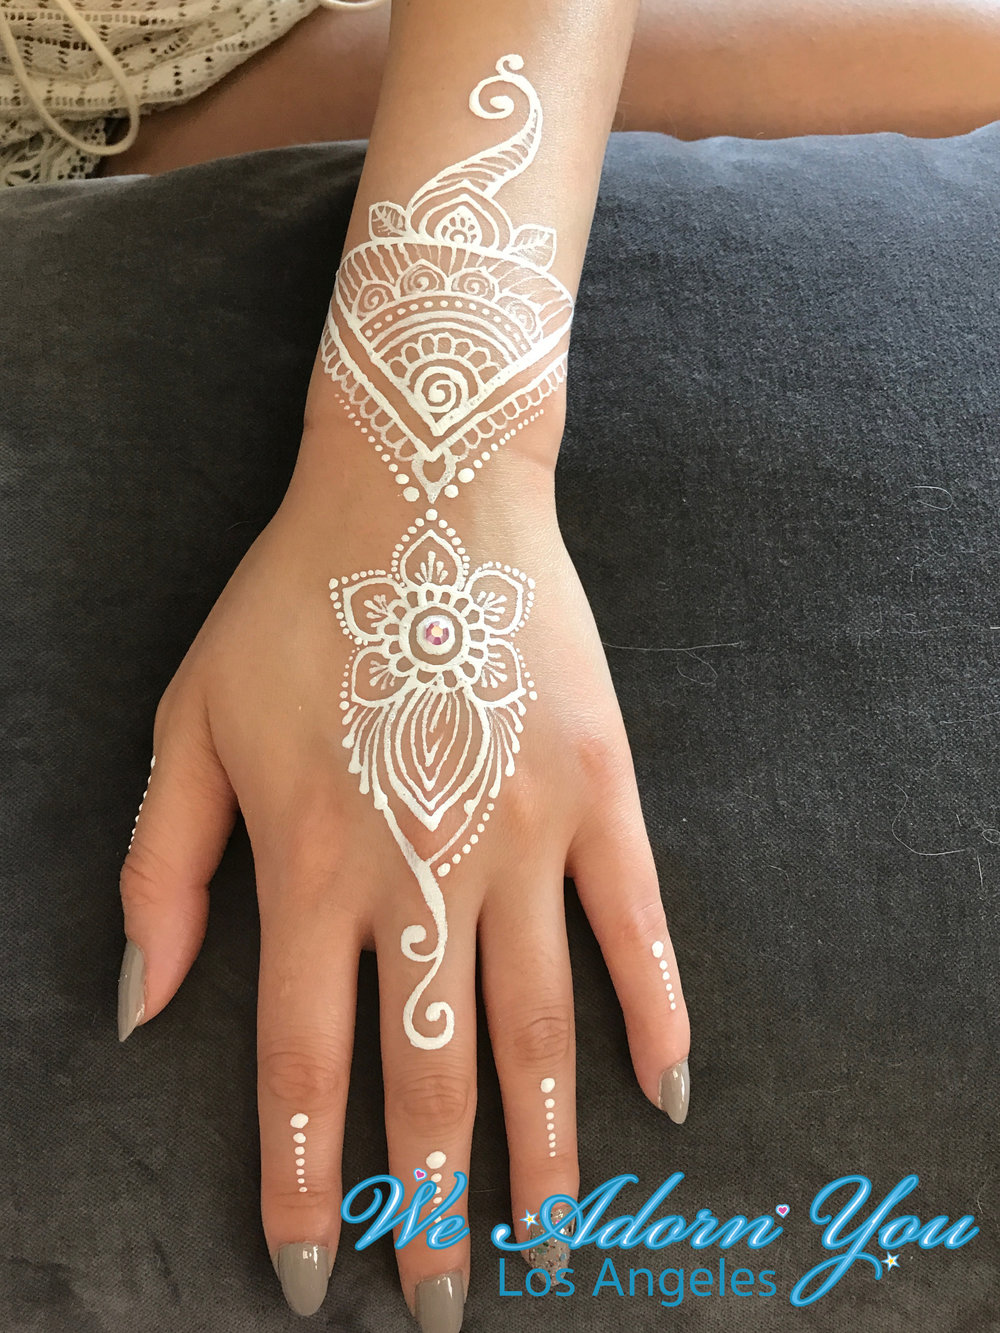 We Adorn You Los Angeles Color Henna White Flower 7.jpg